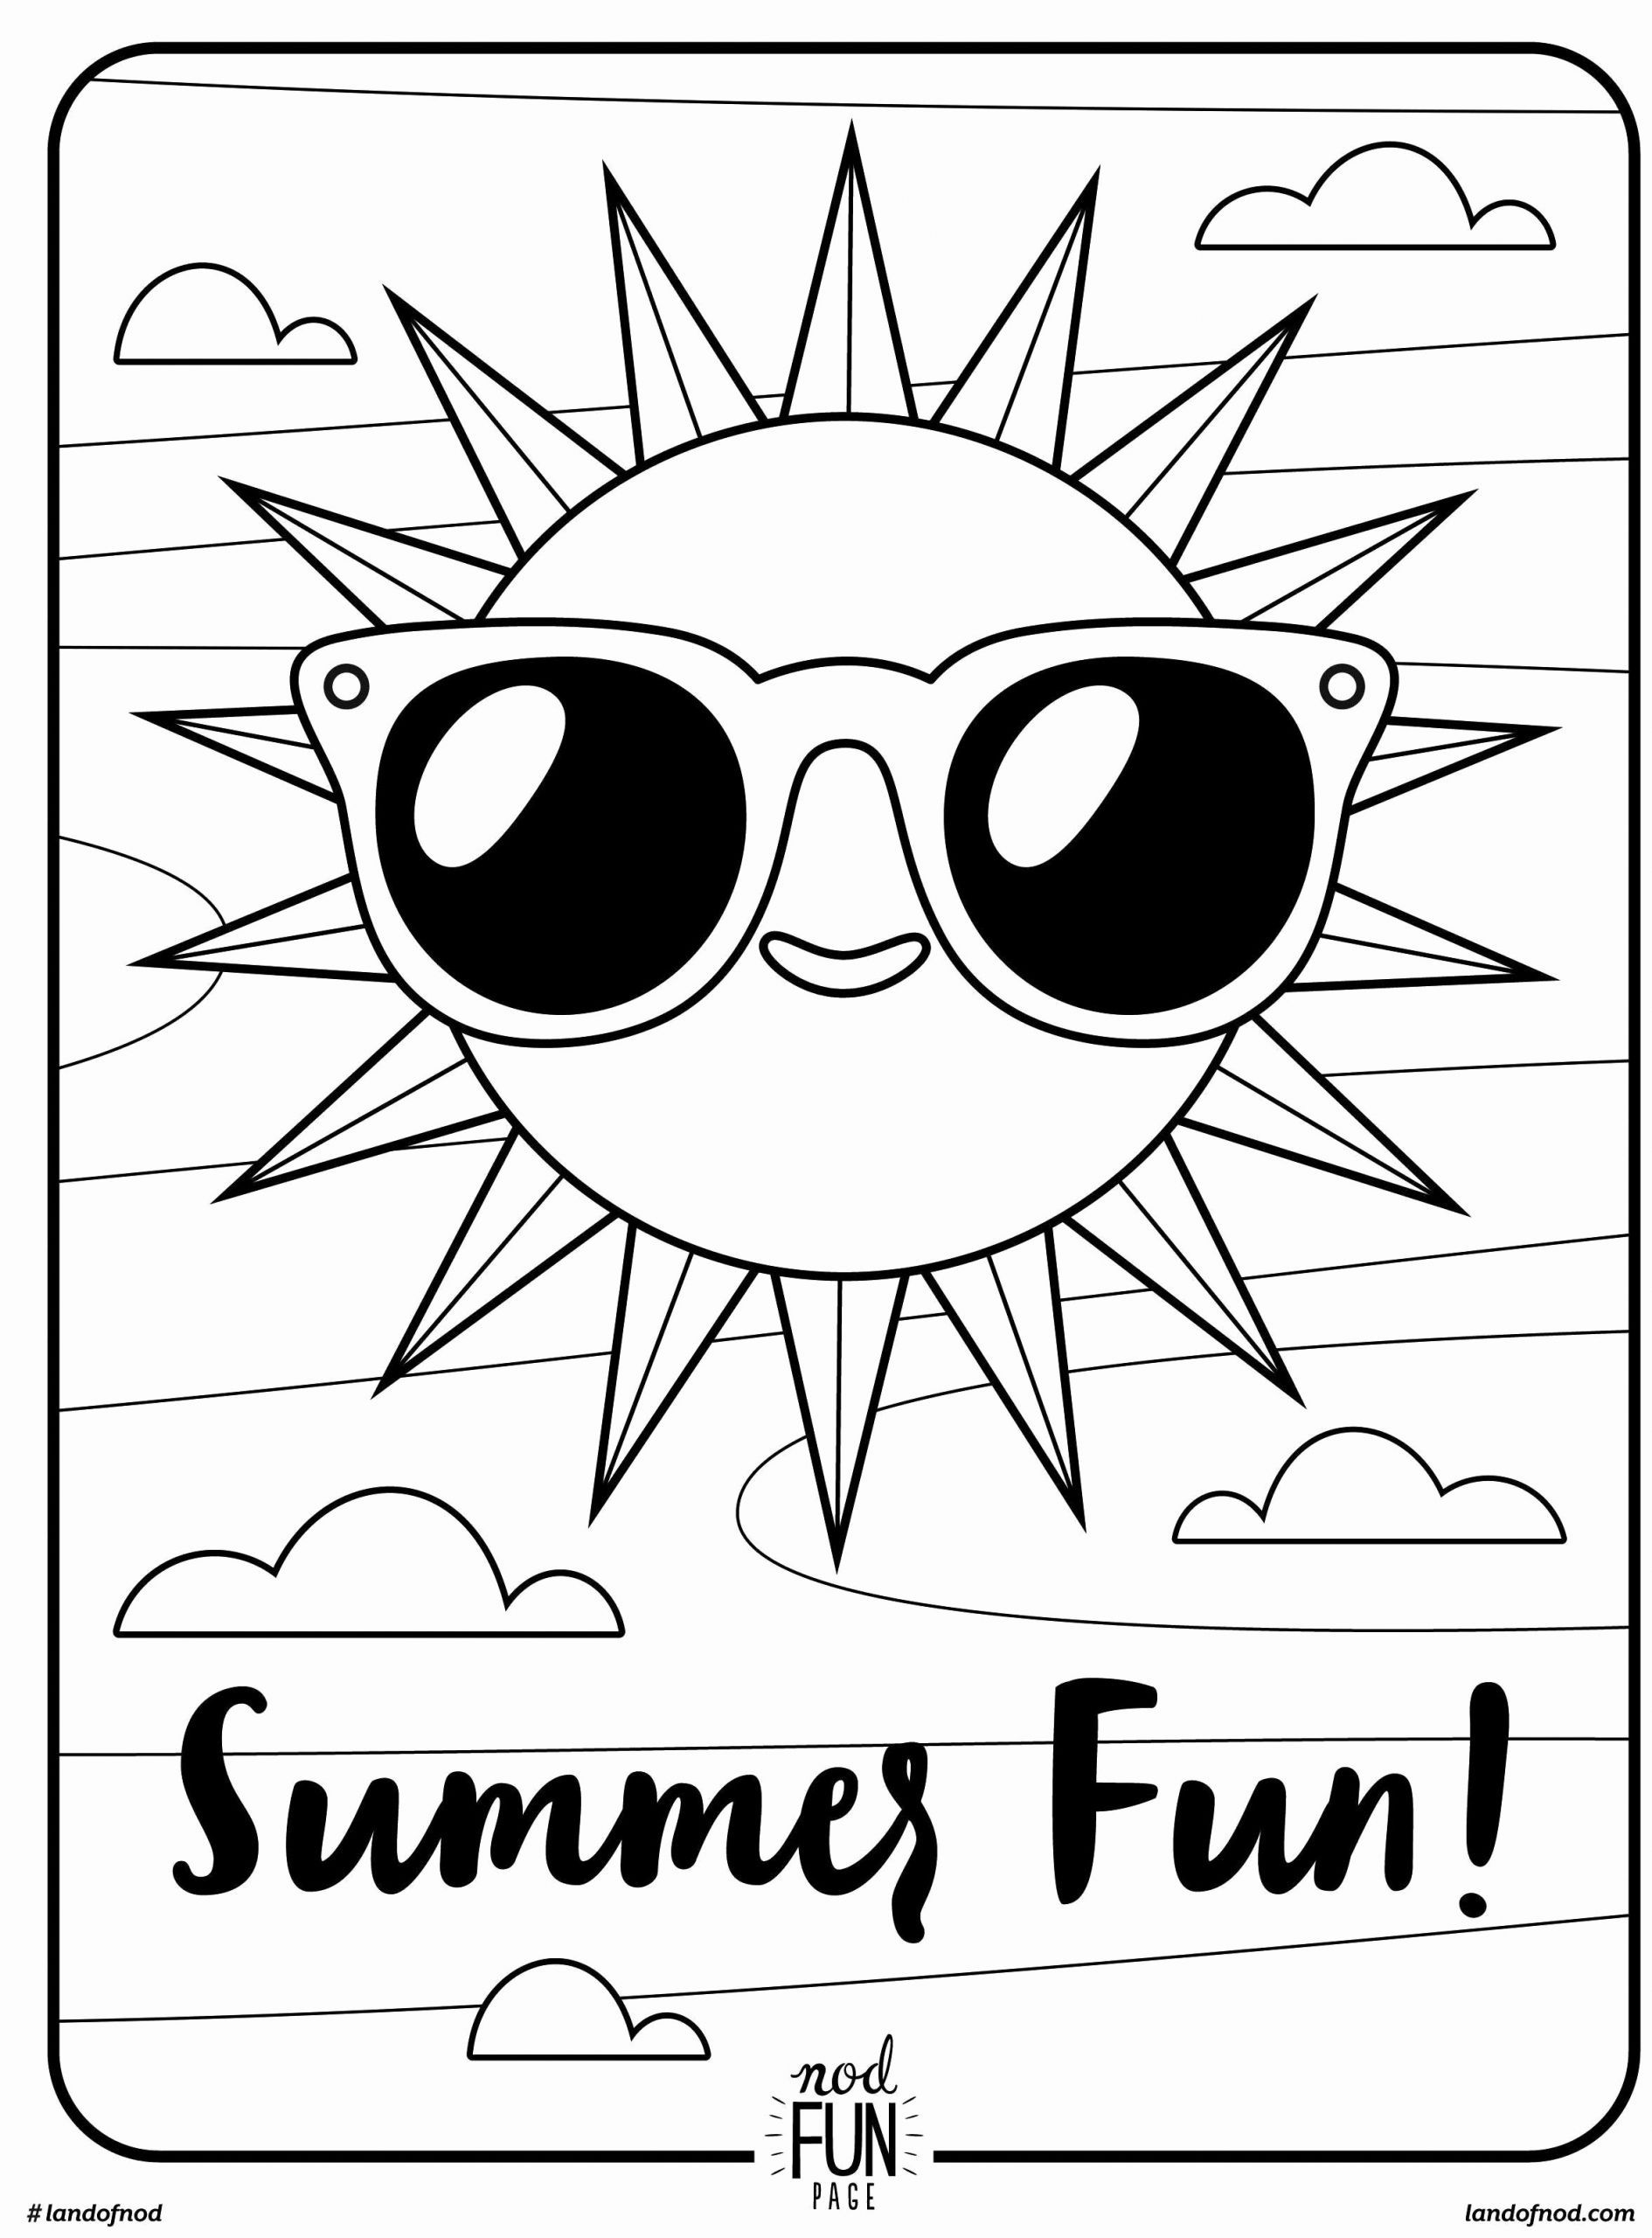 funny summer coloring pages summer fun coloring pages summer coloring sheets summer pages funny summer coloring